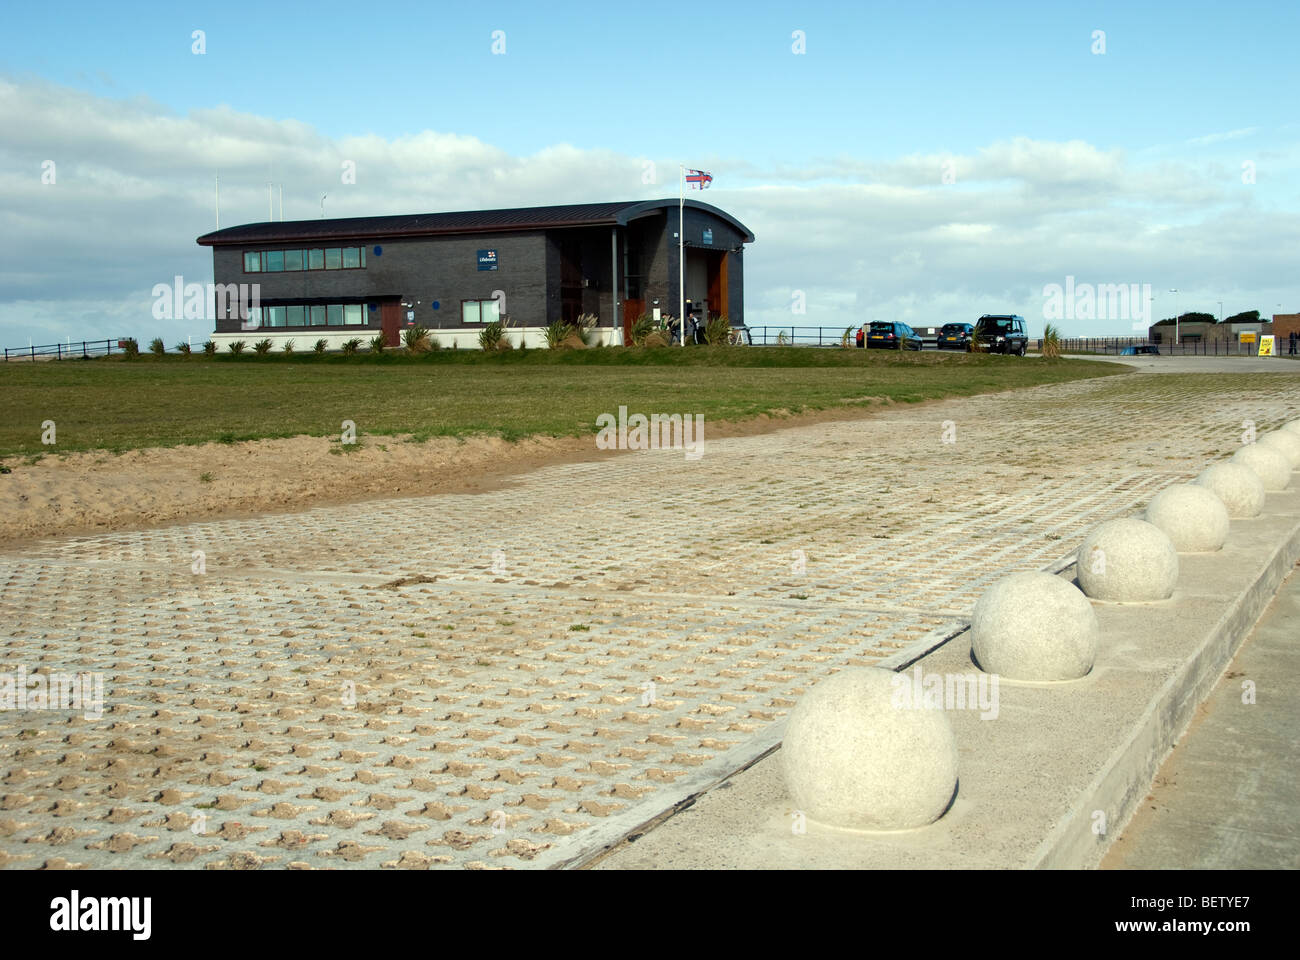 The new lifeboat station at Hoylake on the Wirral Peninsula. This station has state of the art facilities to aid - Stock Image